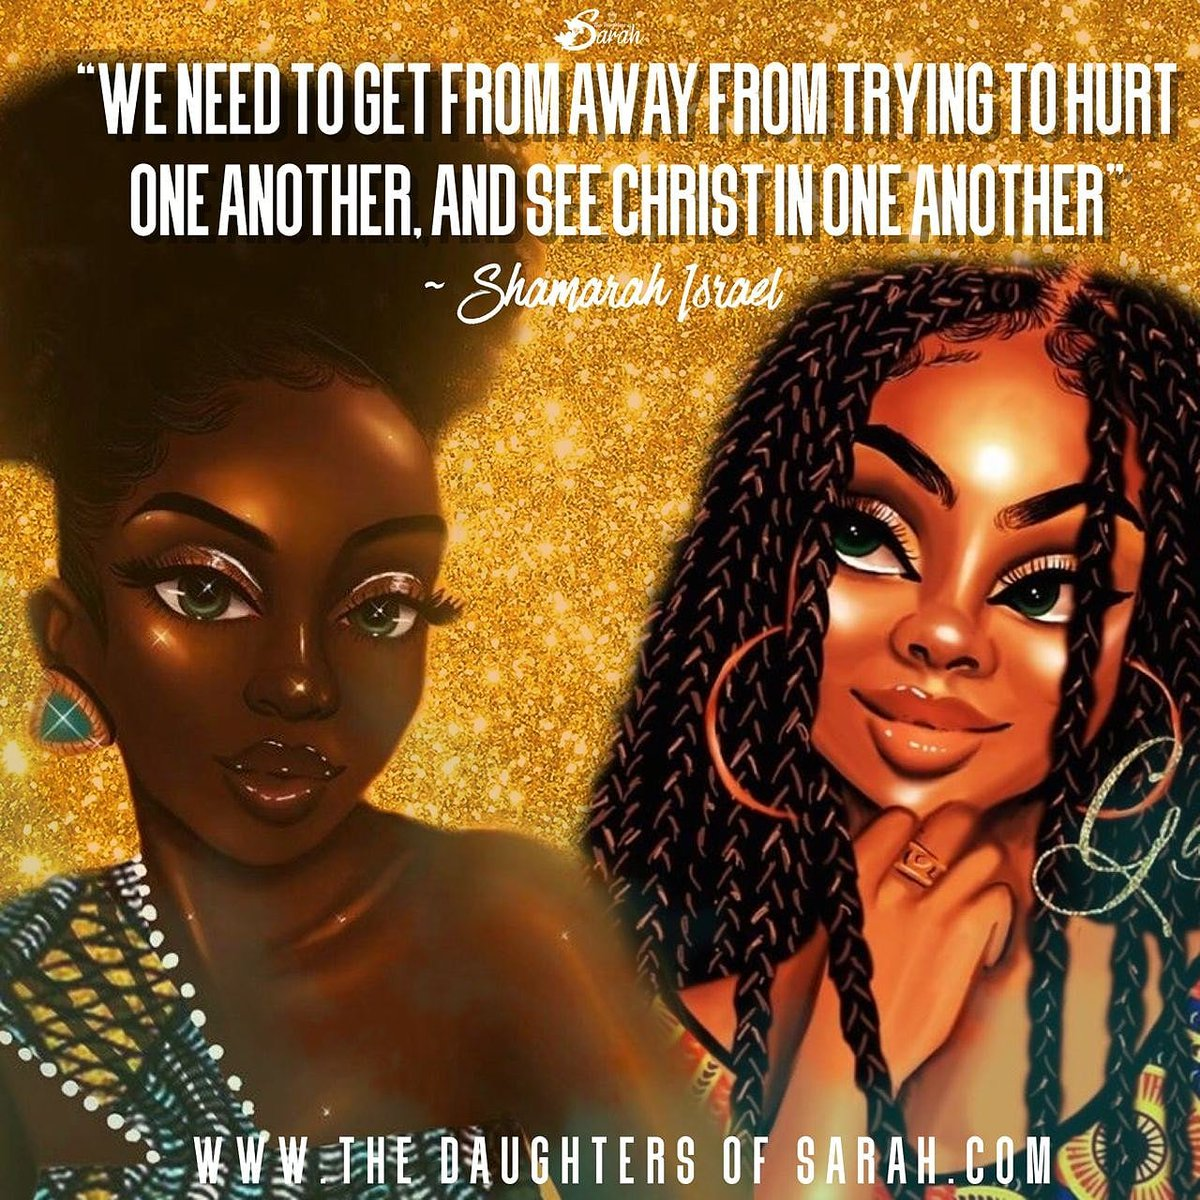 Its #WEAREWEDNESDAY! #Diverse yes but yet the same. We should #build each other up in our differences instead of tearing each other down through them. #Speckled birds is what God calls us, Stay Focused!  #DOS #TITUS2CHAT #COLORISM #BUILD #SISTERHOOD #SISTERSKEEPER https://t.co/QeQjRnNMuV